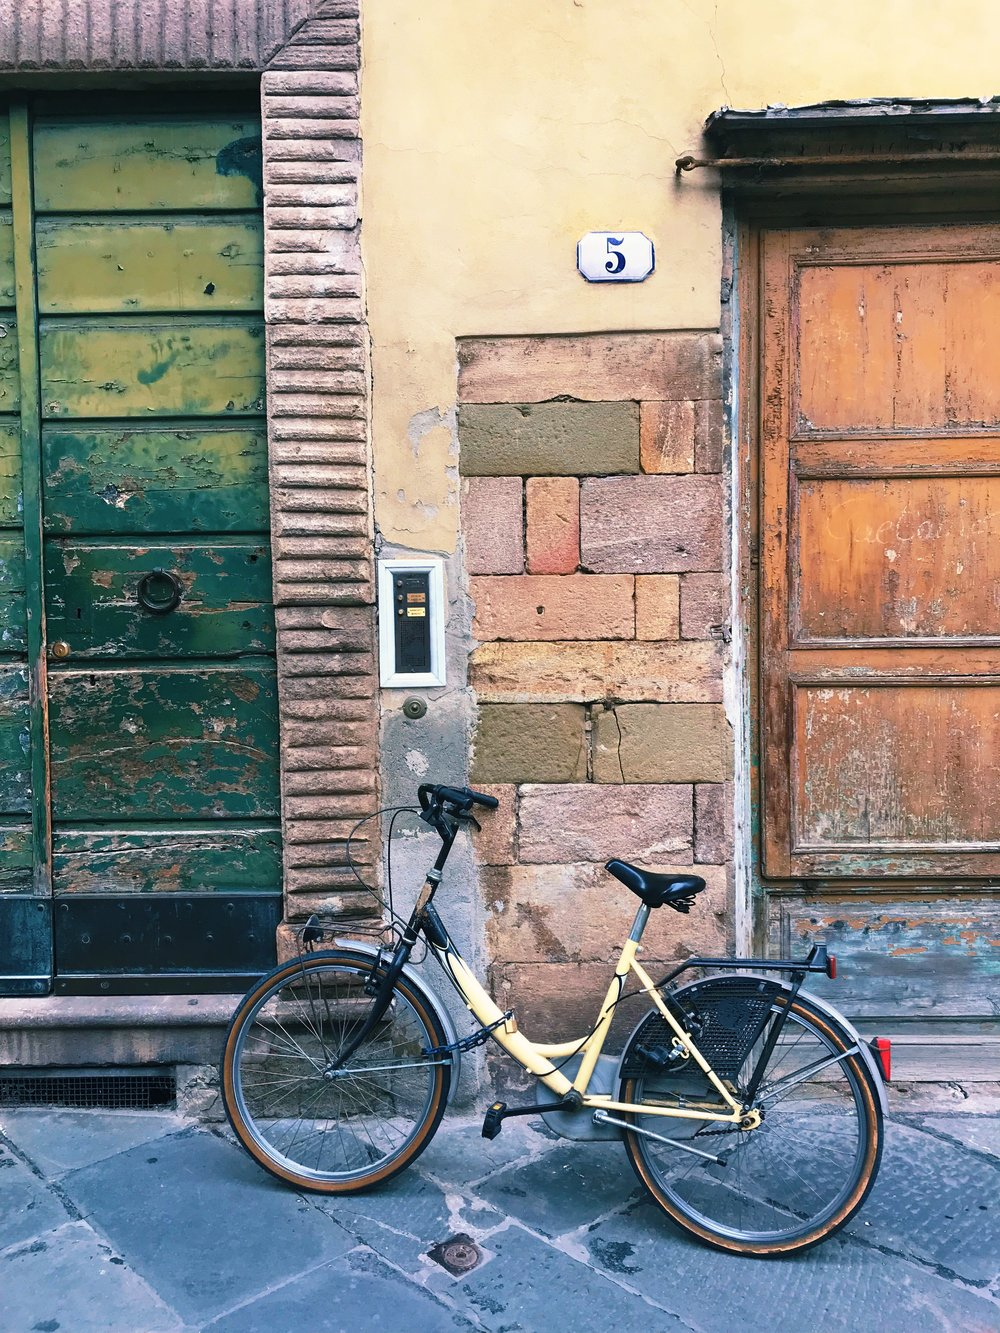 Whether by foot or by bike, weaving your way through Lucca's colorful streets feels absolutely magical.